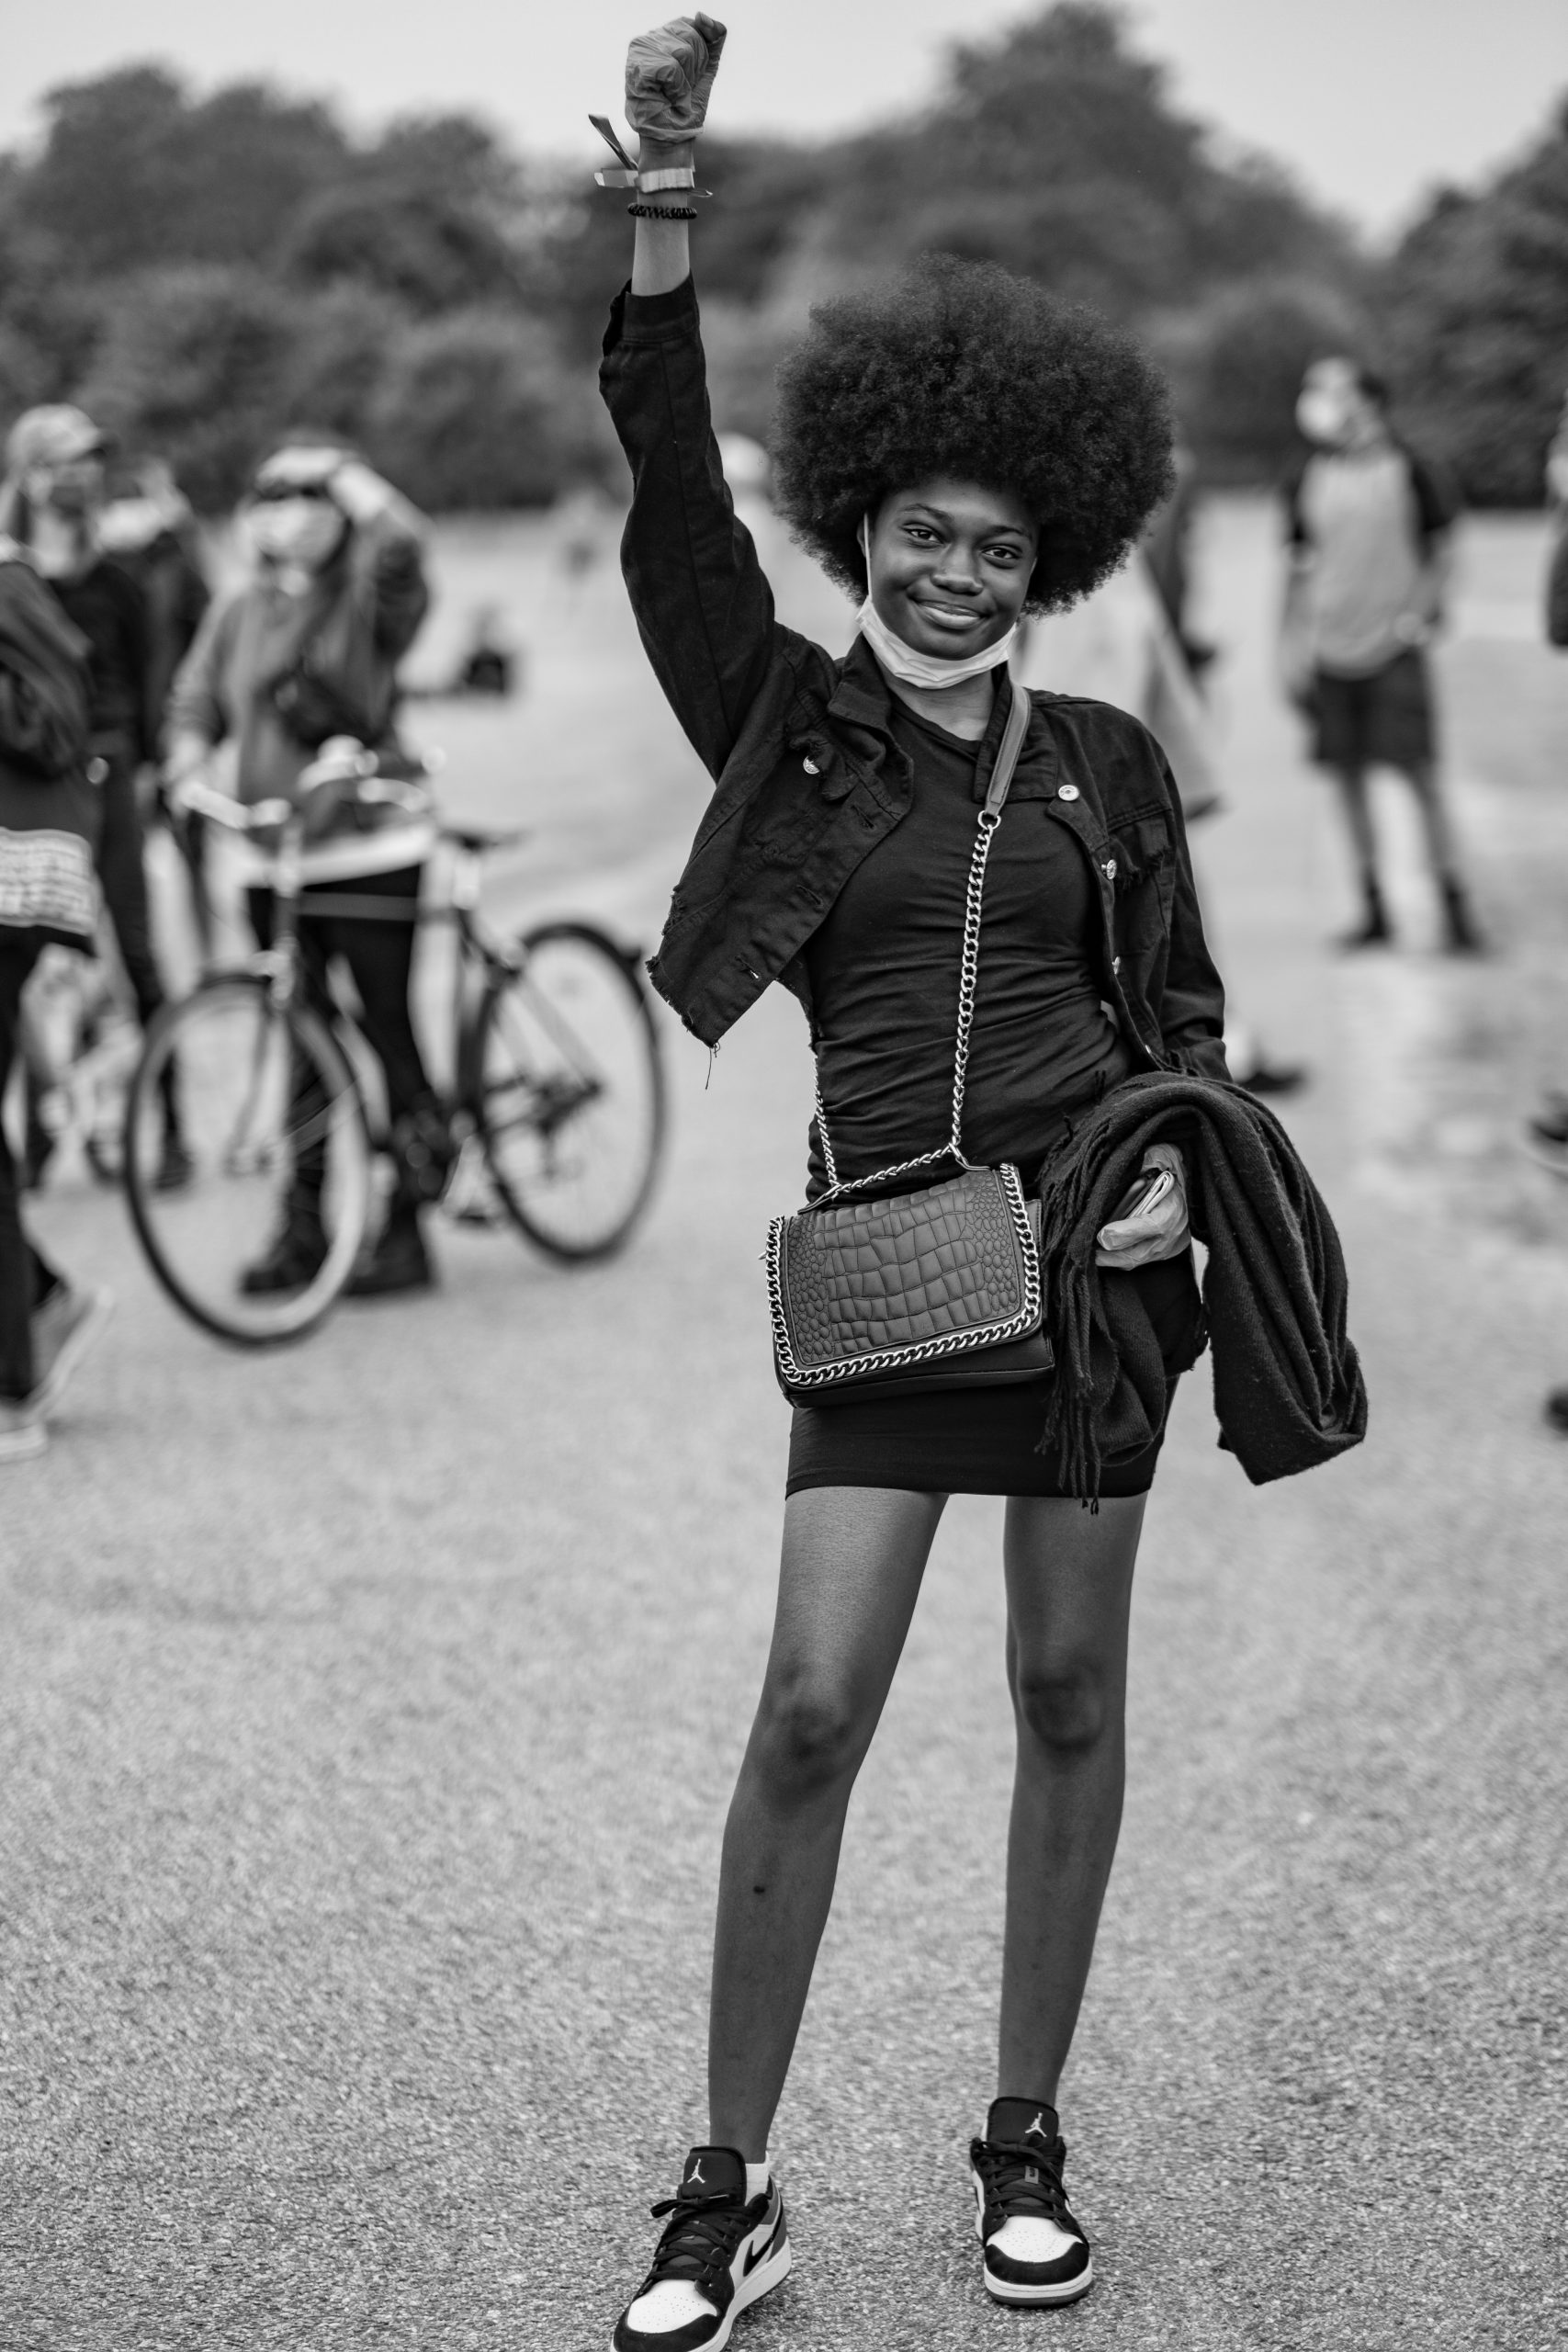 Misan Harriman Talks Being 1st Black Male Photographer to shoot a British Vogue cover